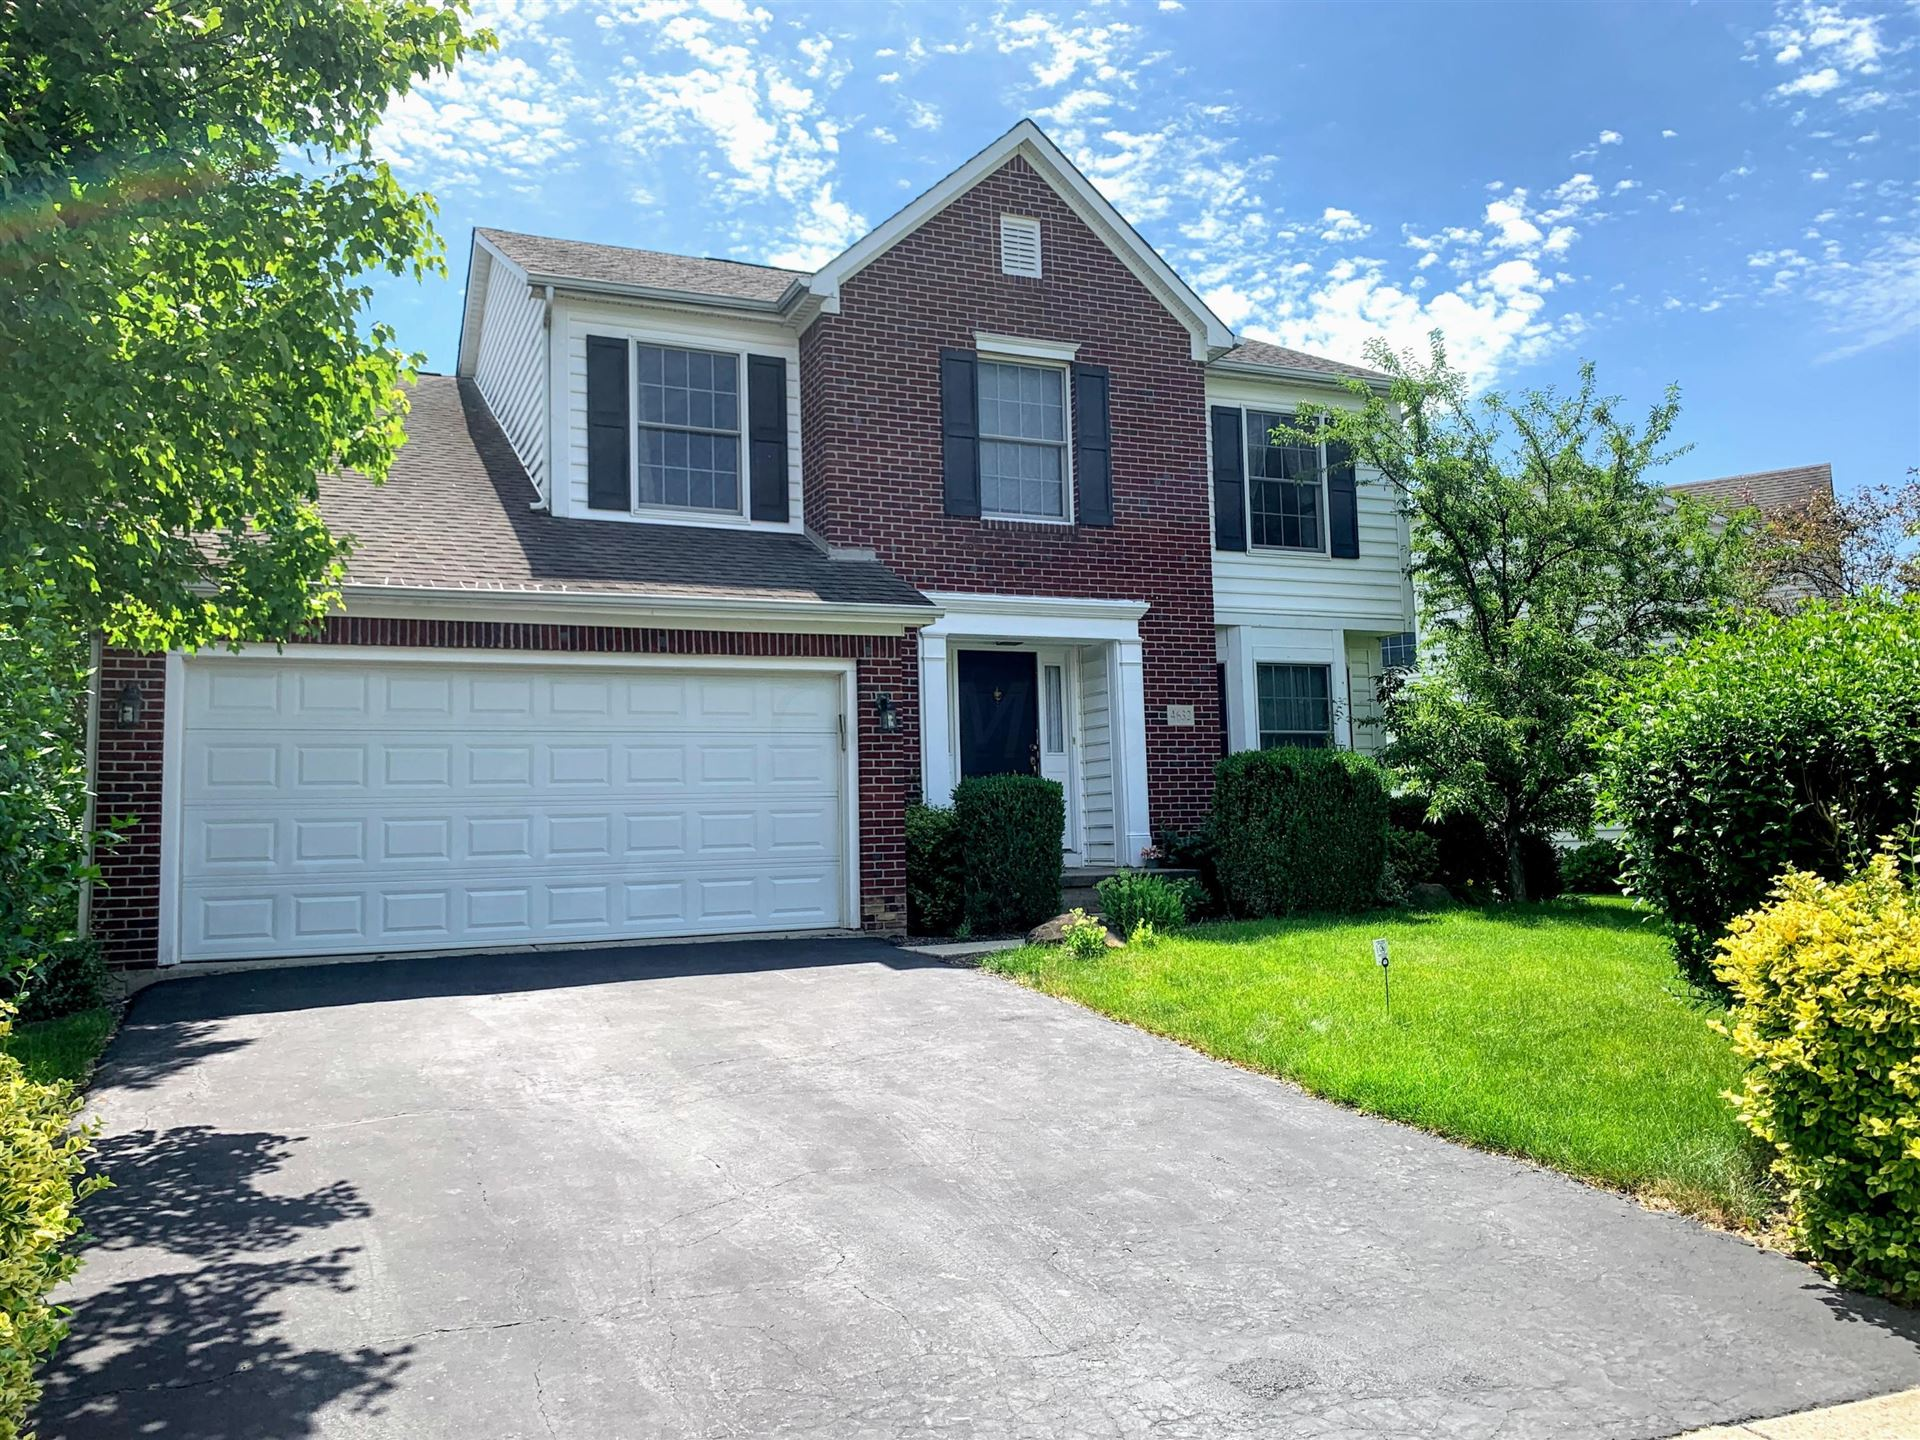 Photo of 4632 Herb Garden Drive, New Albany, OH 43054 (MLS # 221026135)